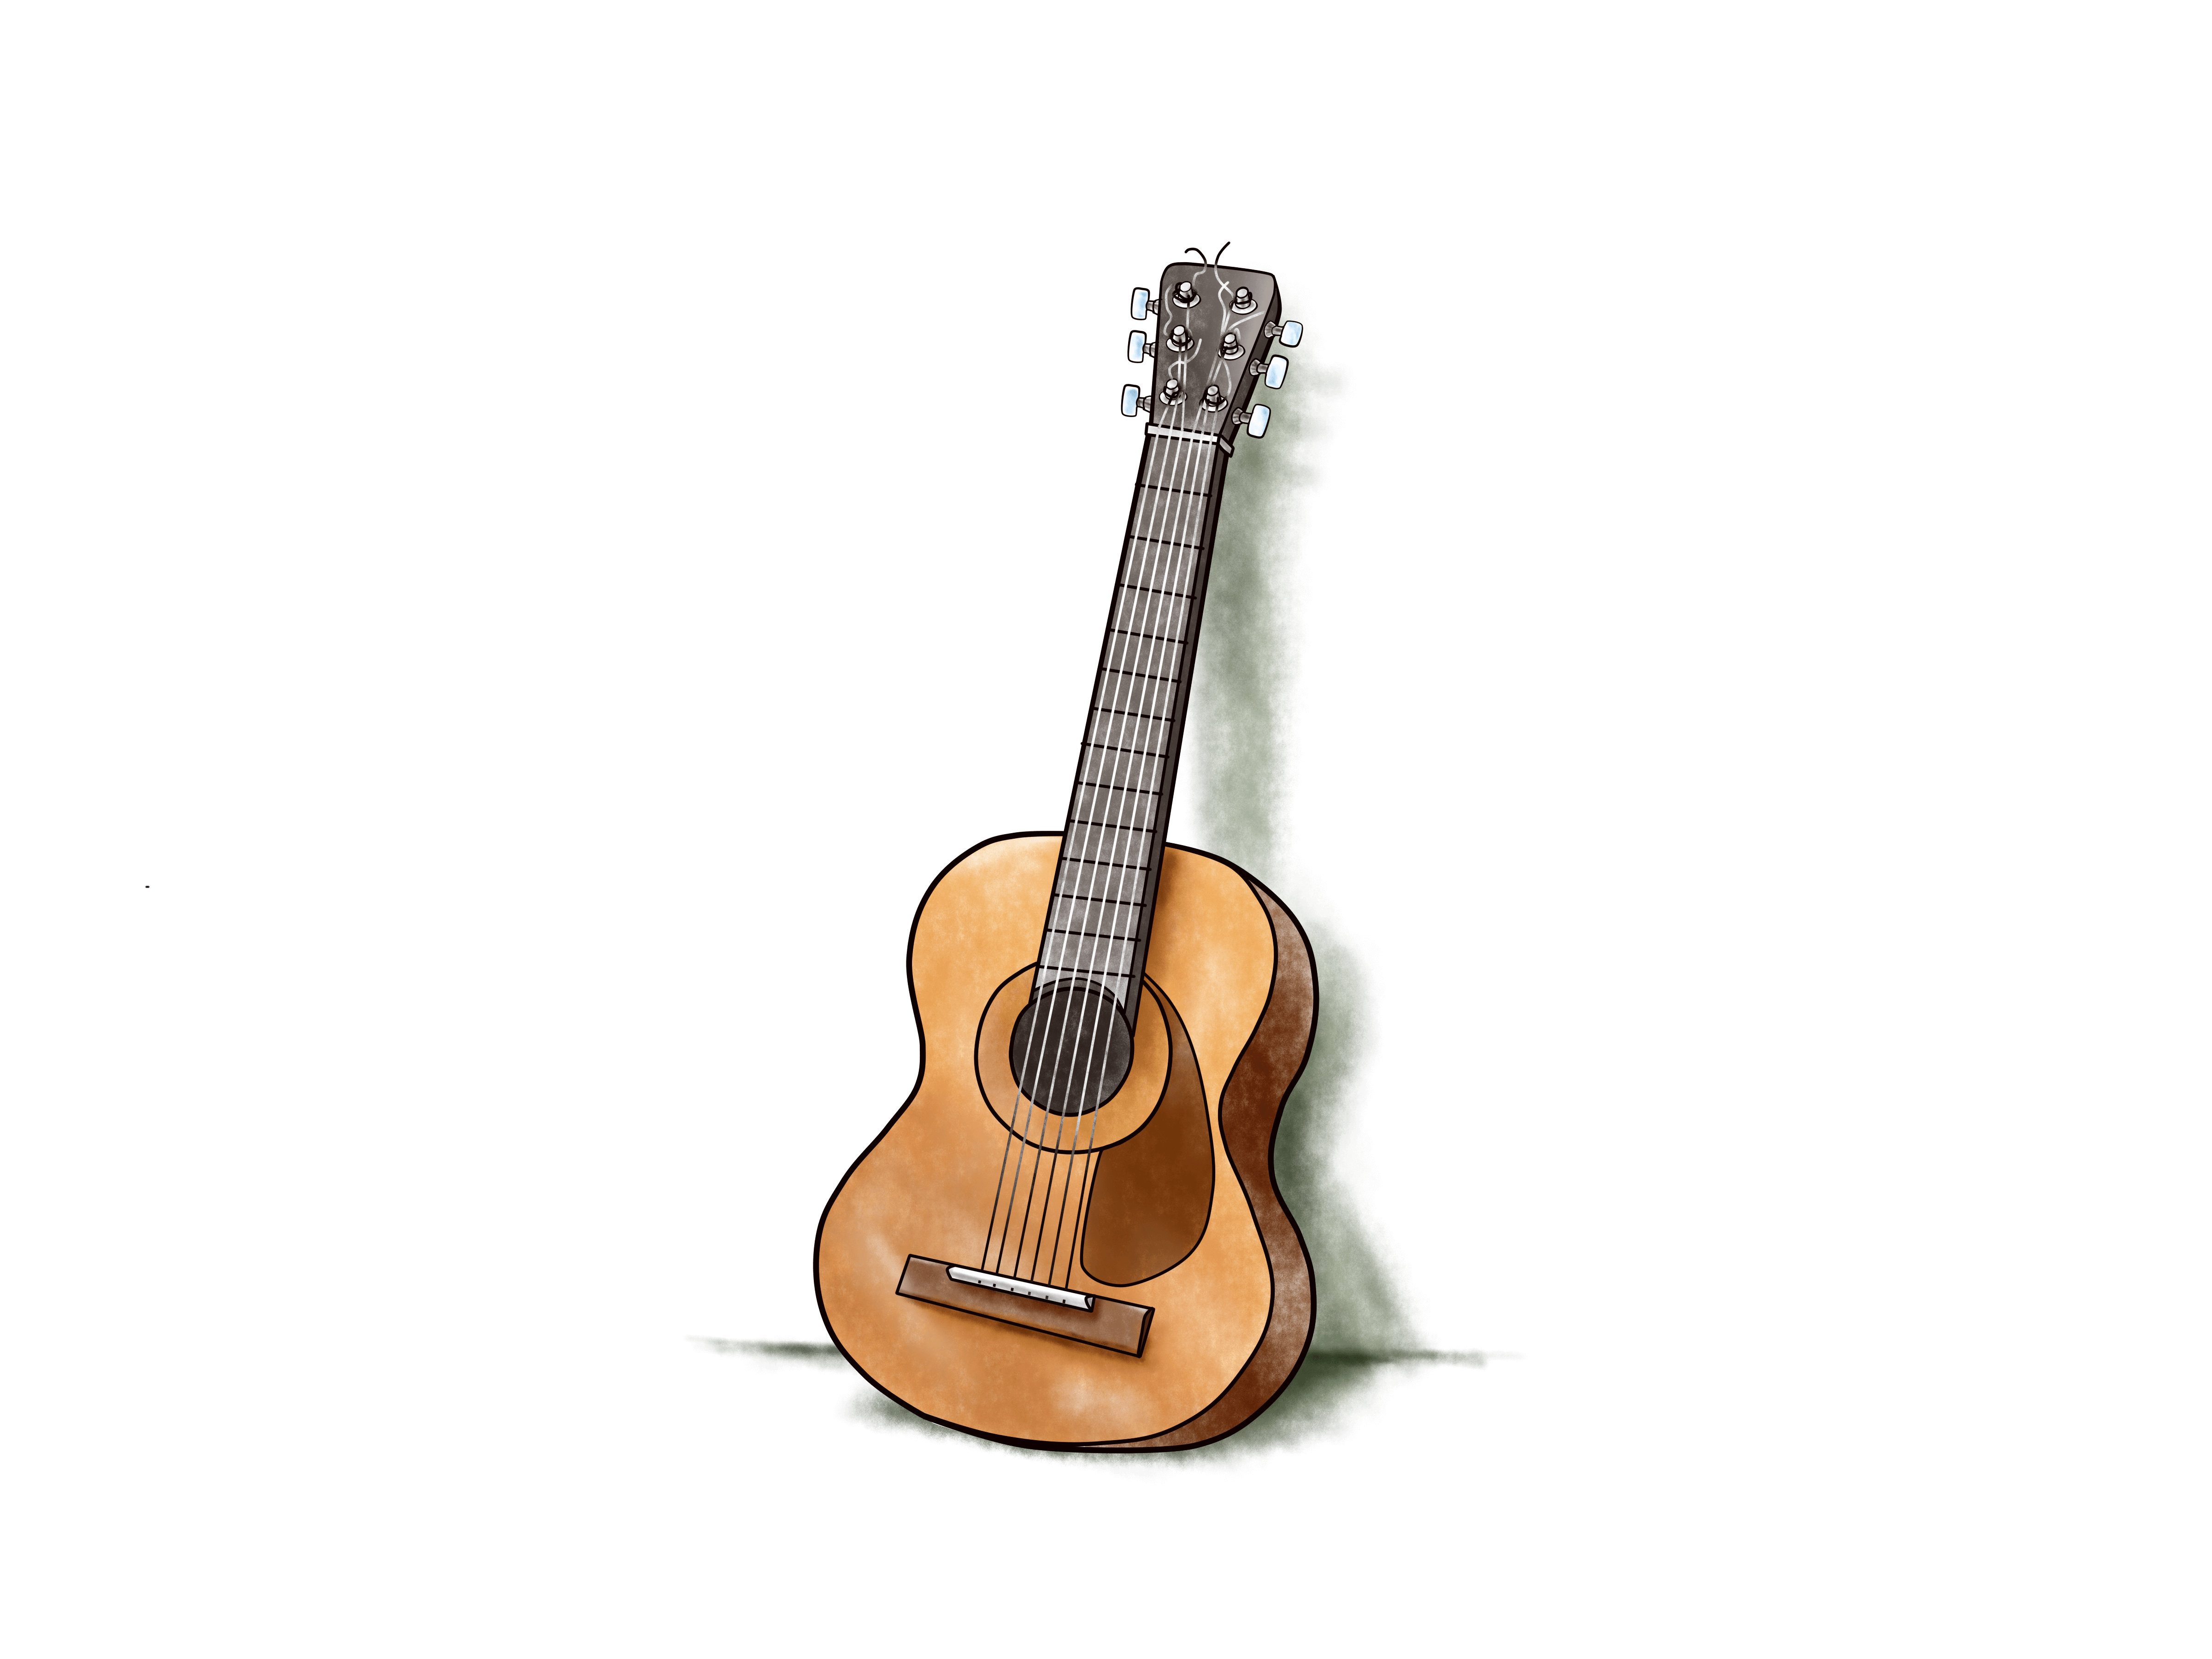 Growth drawing guitar. Learning with science